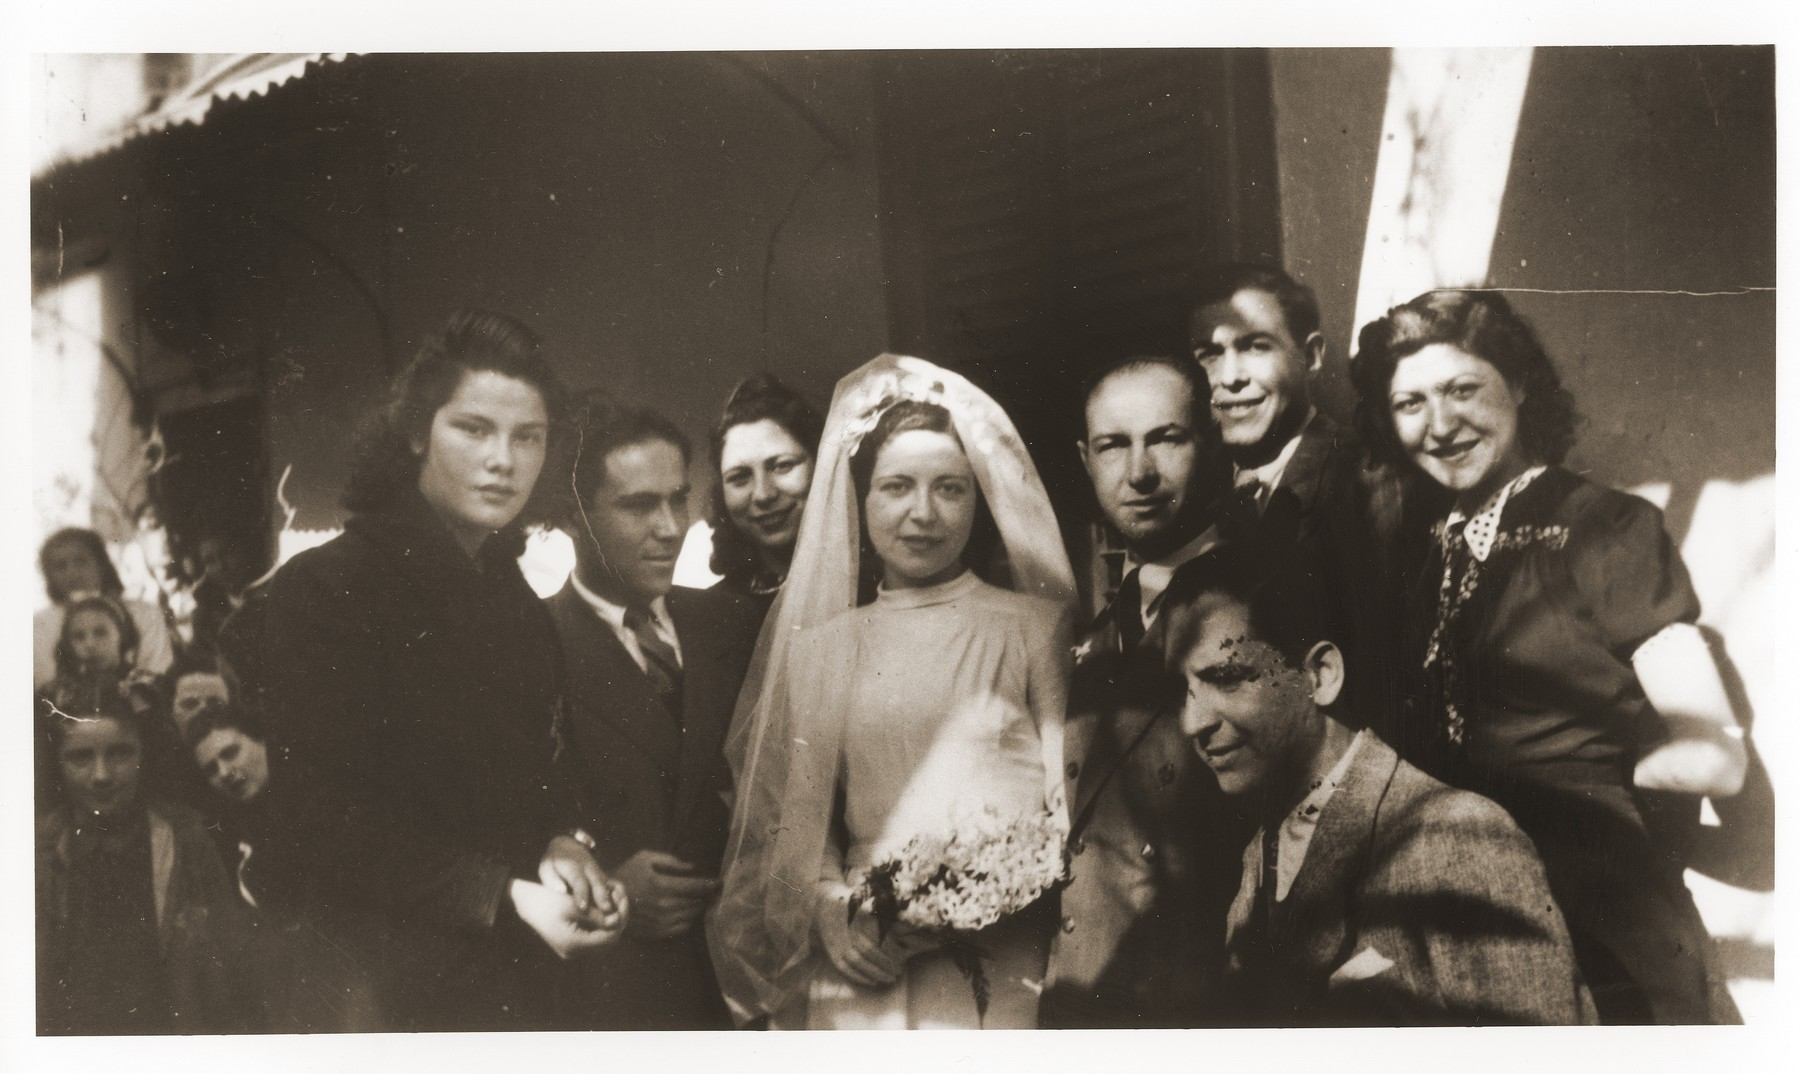 The bride and groom, Victoria Sarfati and Yehuda (Leon) Beraha, pose with family members at their wedding.  Their marriage was hastily arranged two months before their deportation so that they might be able to stay together.  The couple perished in Auschwitz.